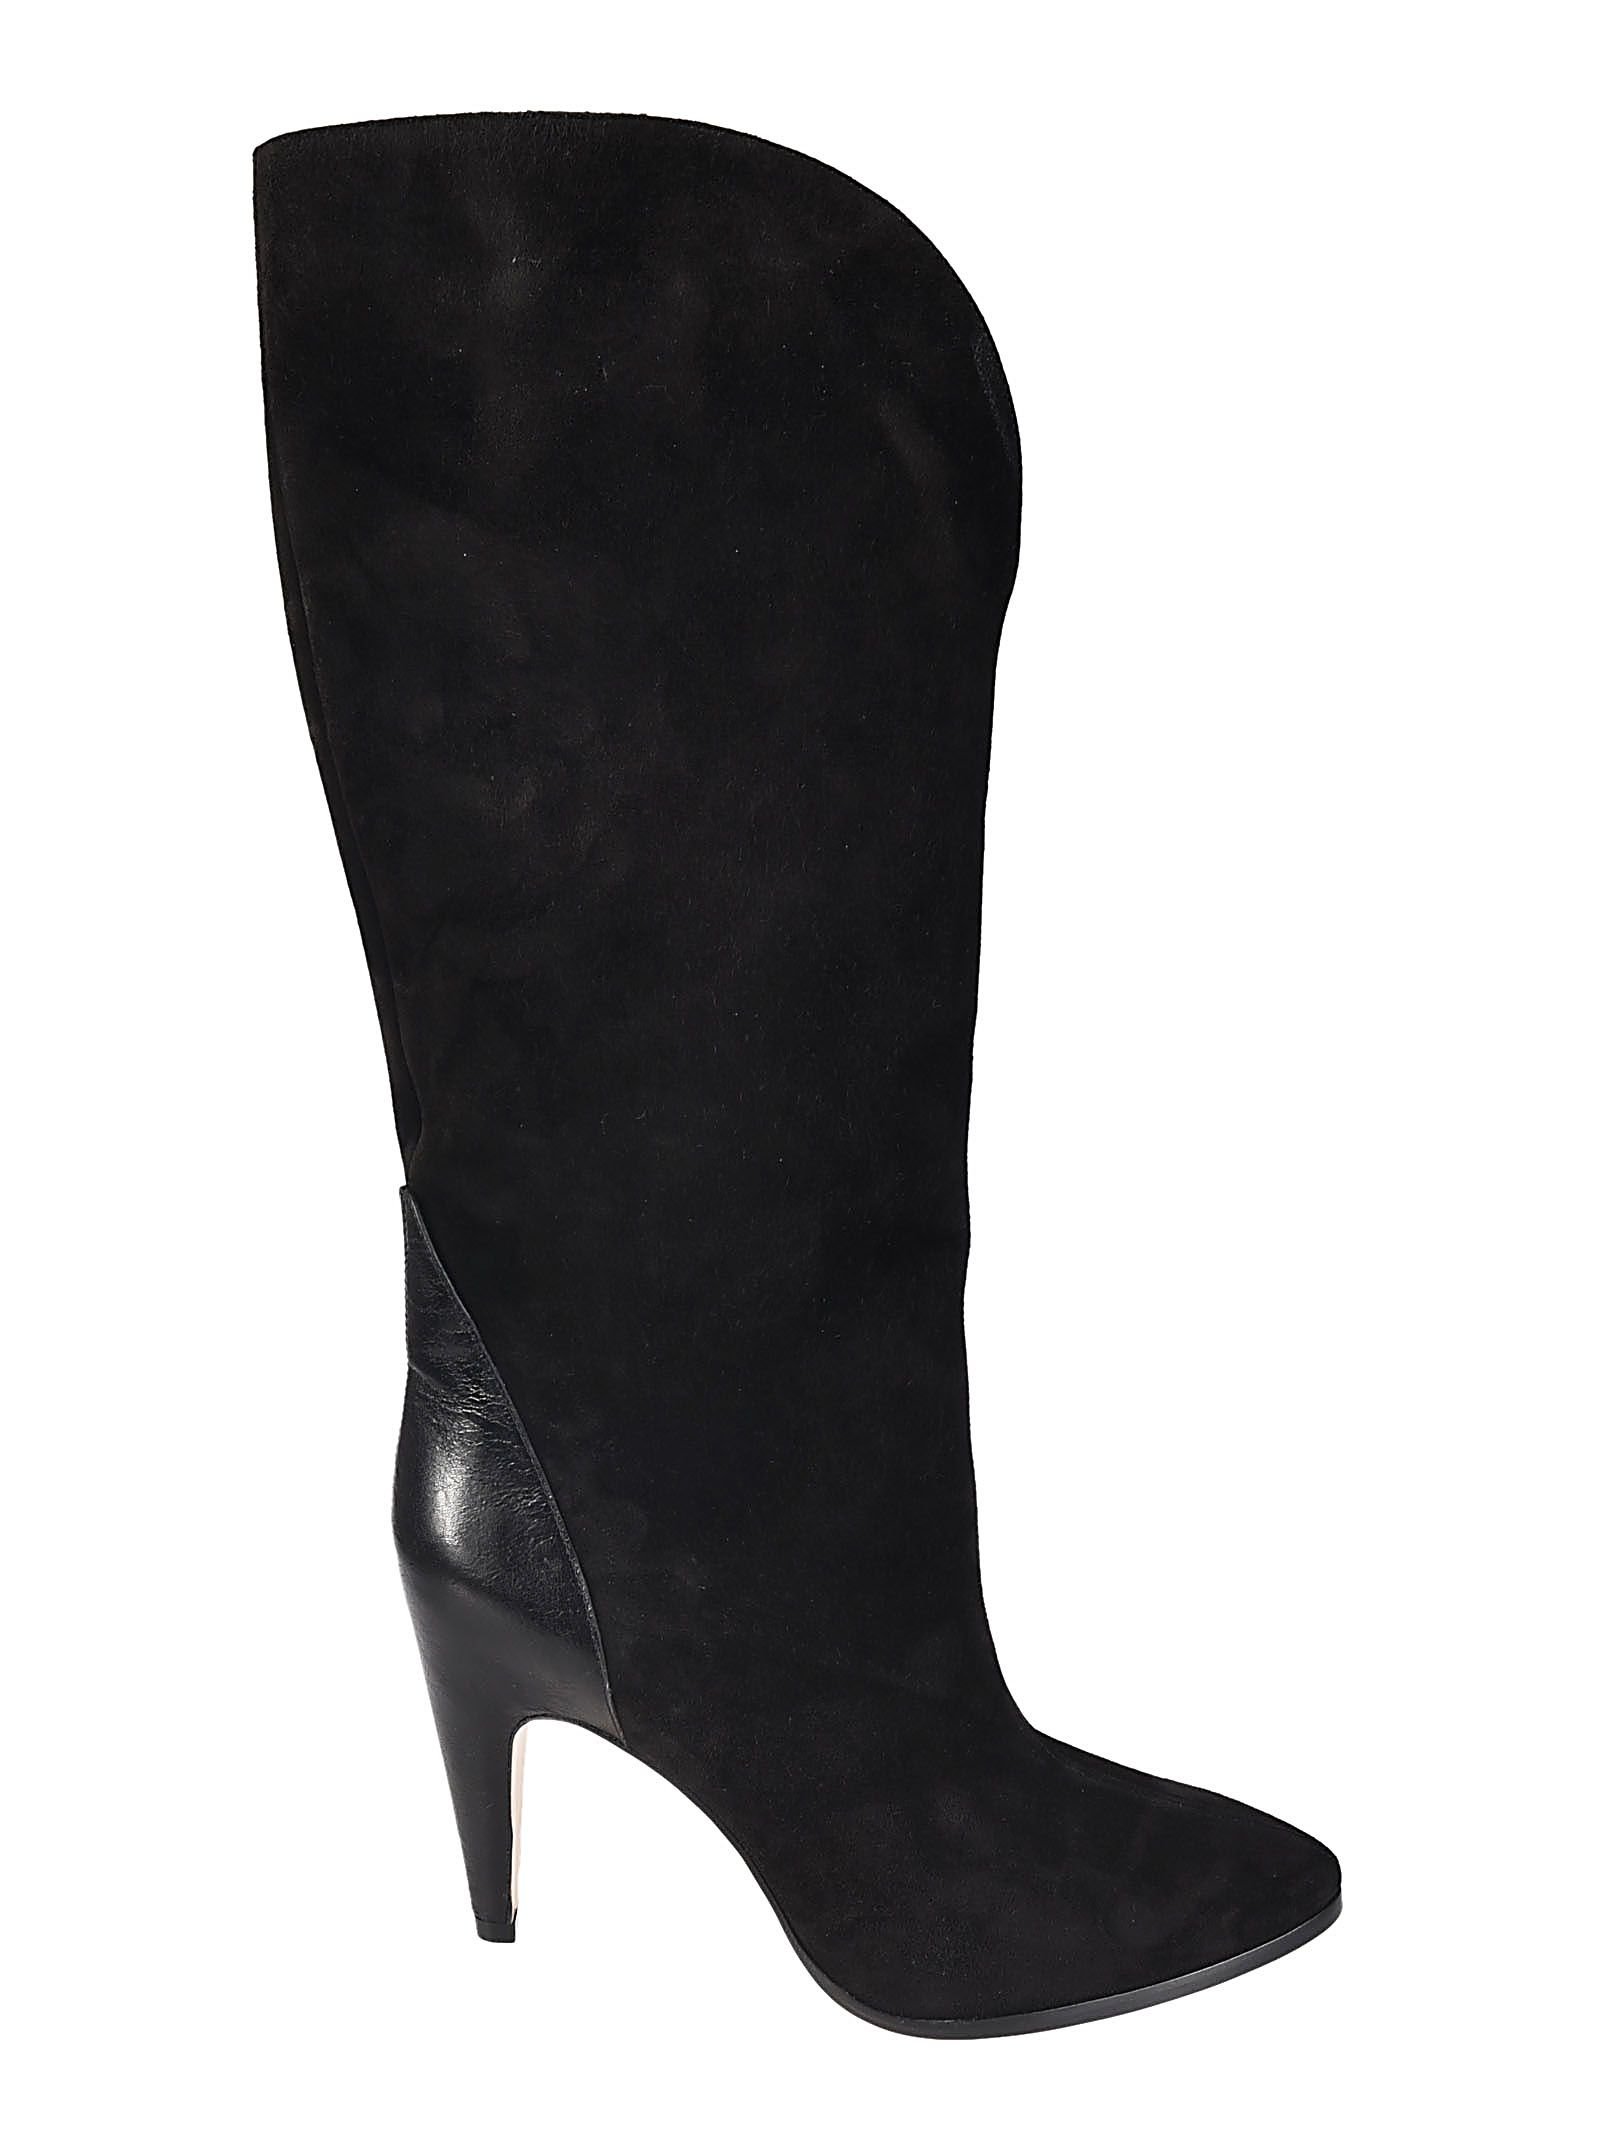 Womens Suede & Stamped Leather Knee Boots Givenchy Clearance Footlocker Finishline Discount Footlocker Finishline Clearance Best Store To Get Get Authentic Cheap Online Cheap Pre Order 9QAQea